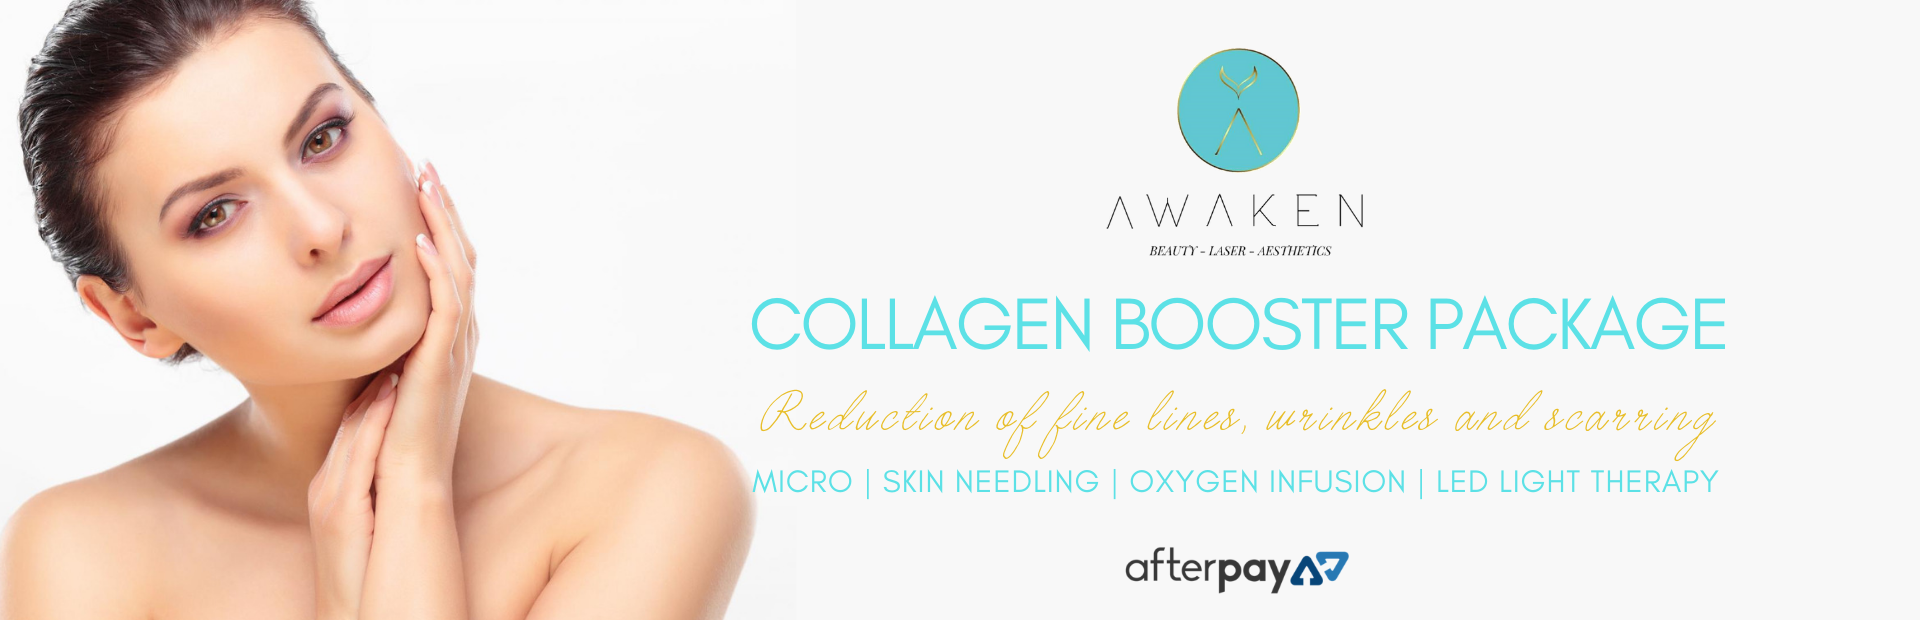 Collagen Booster Package